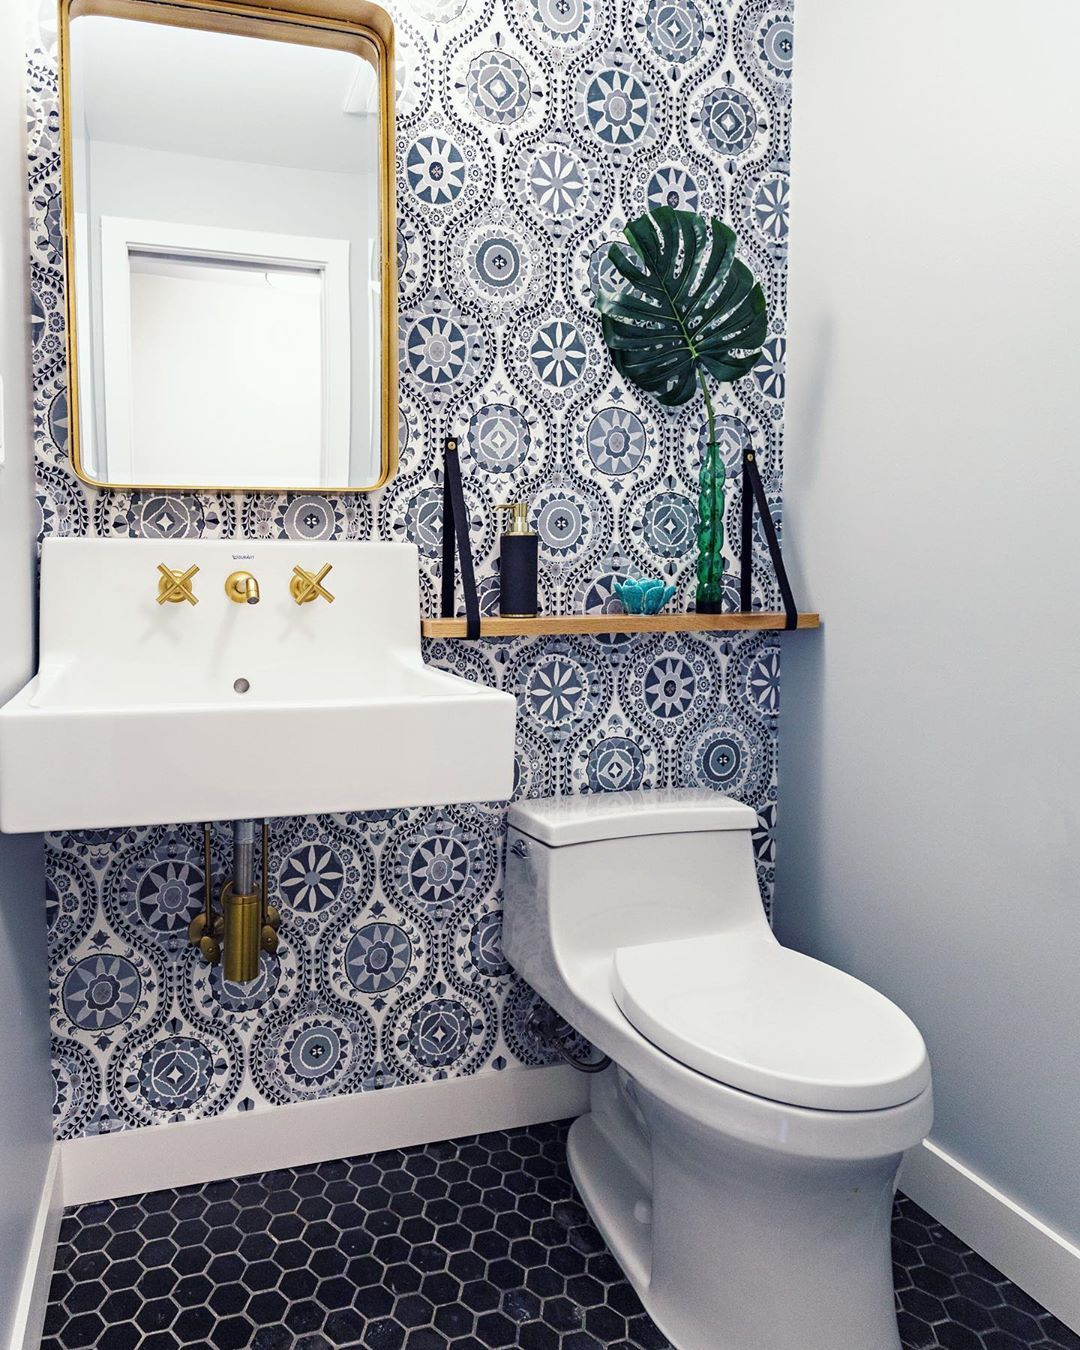 Christianne Benner Design On Instagram A Beautiful Beforeandafter Of This Tiny Powder Room A Spl Tiny Powder Rooms Powder Room Wallpaper Powder Room Small